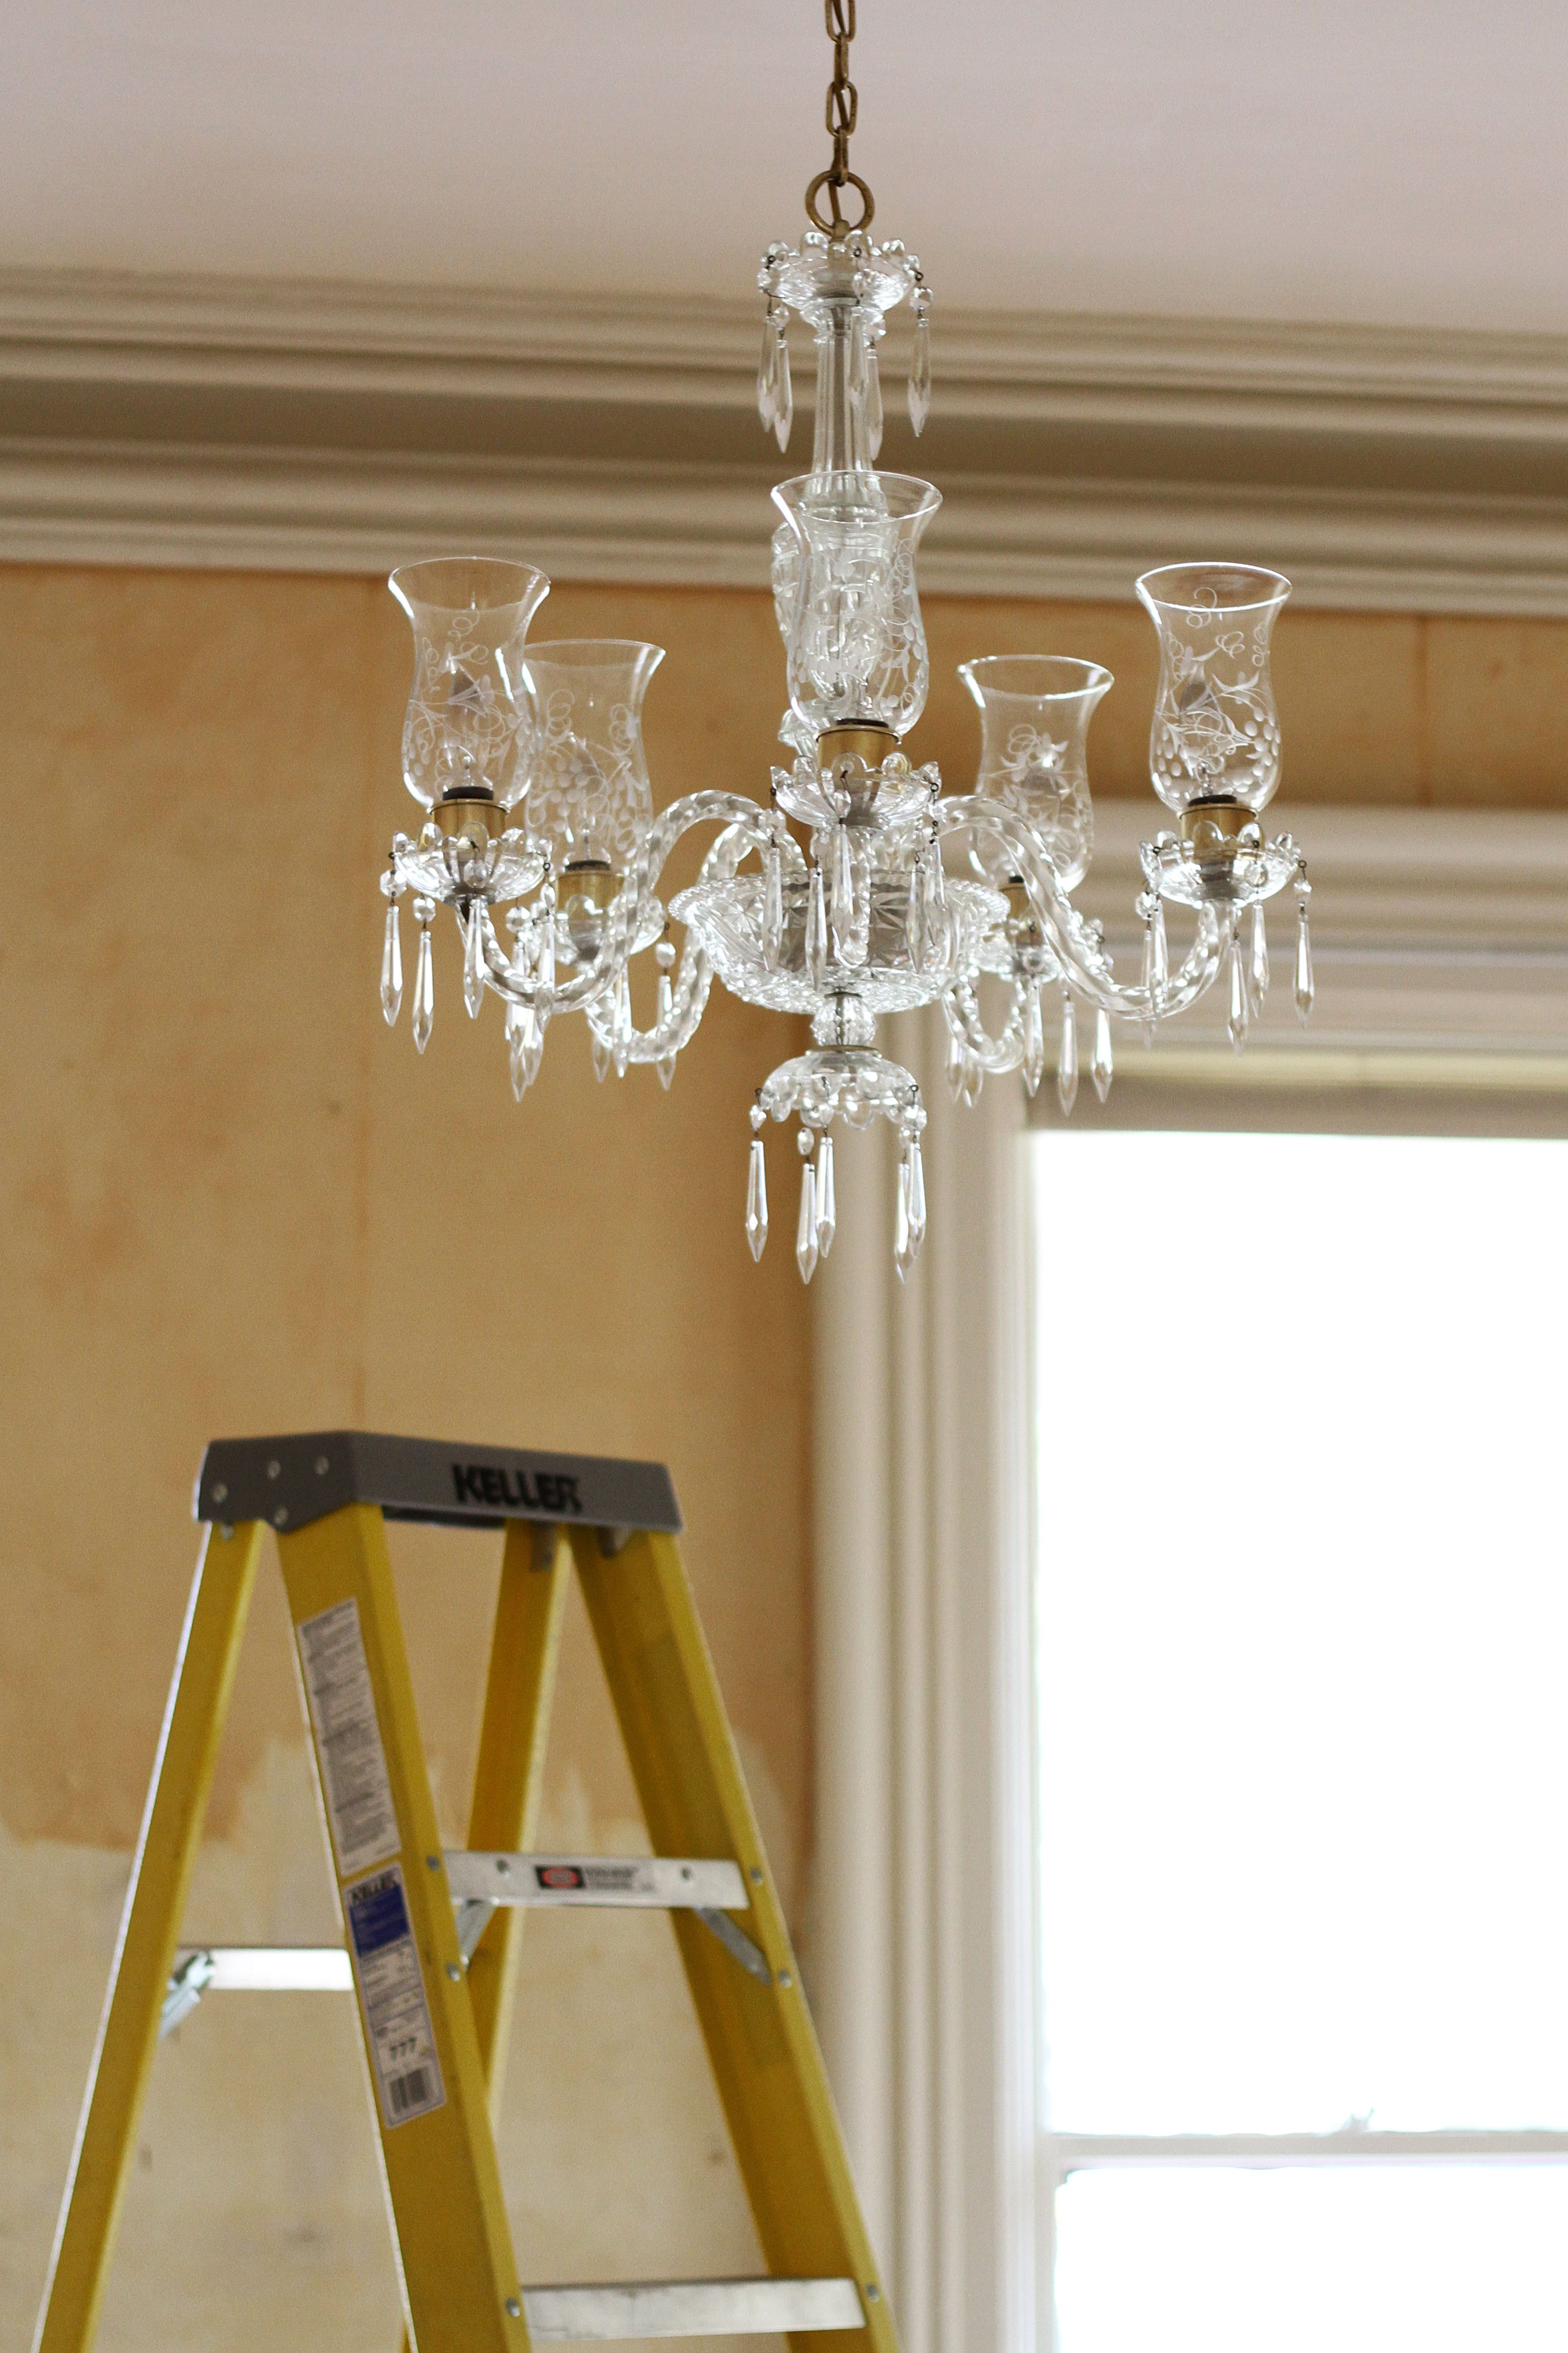 How To Clean A Chandelier | Apartment Therapy Throughout Clea 3 Light Crystal Chandeliers (View 23 of 30)